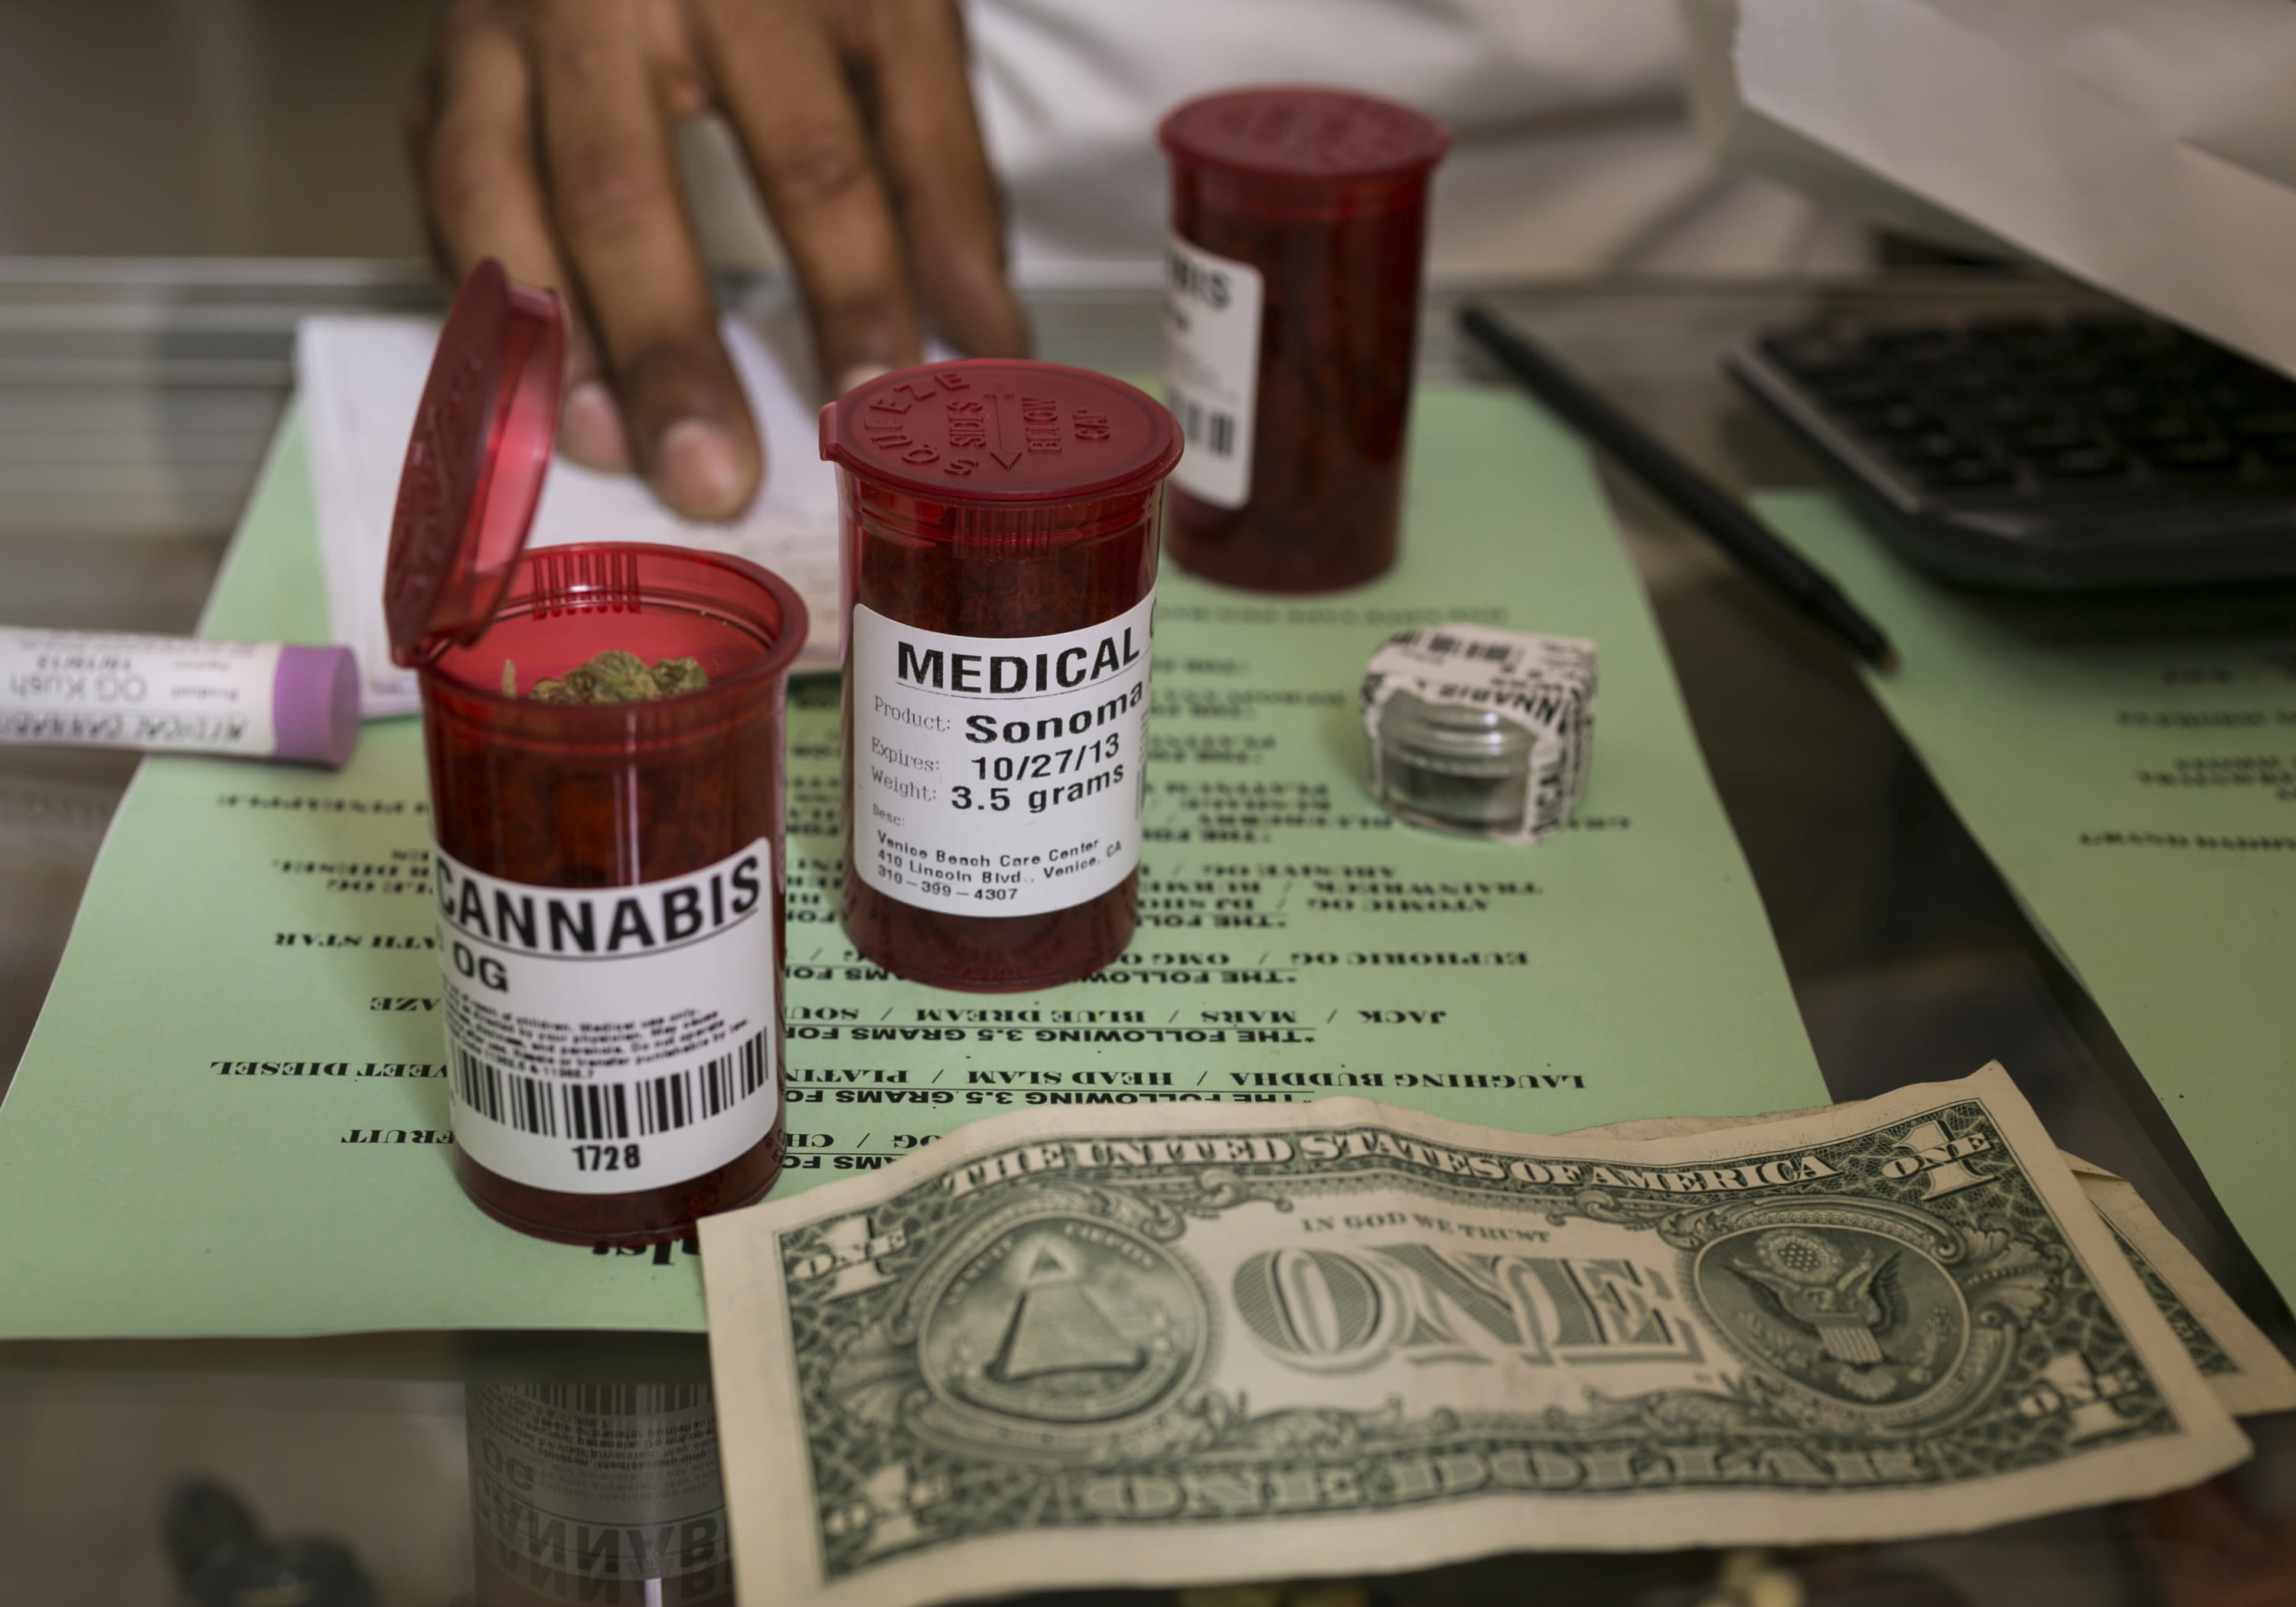 California lawmakers weigh rules for medicinal pot shops